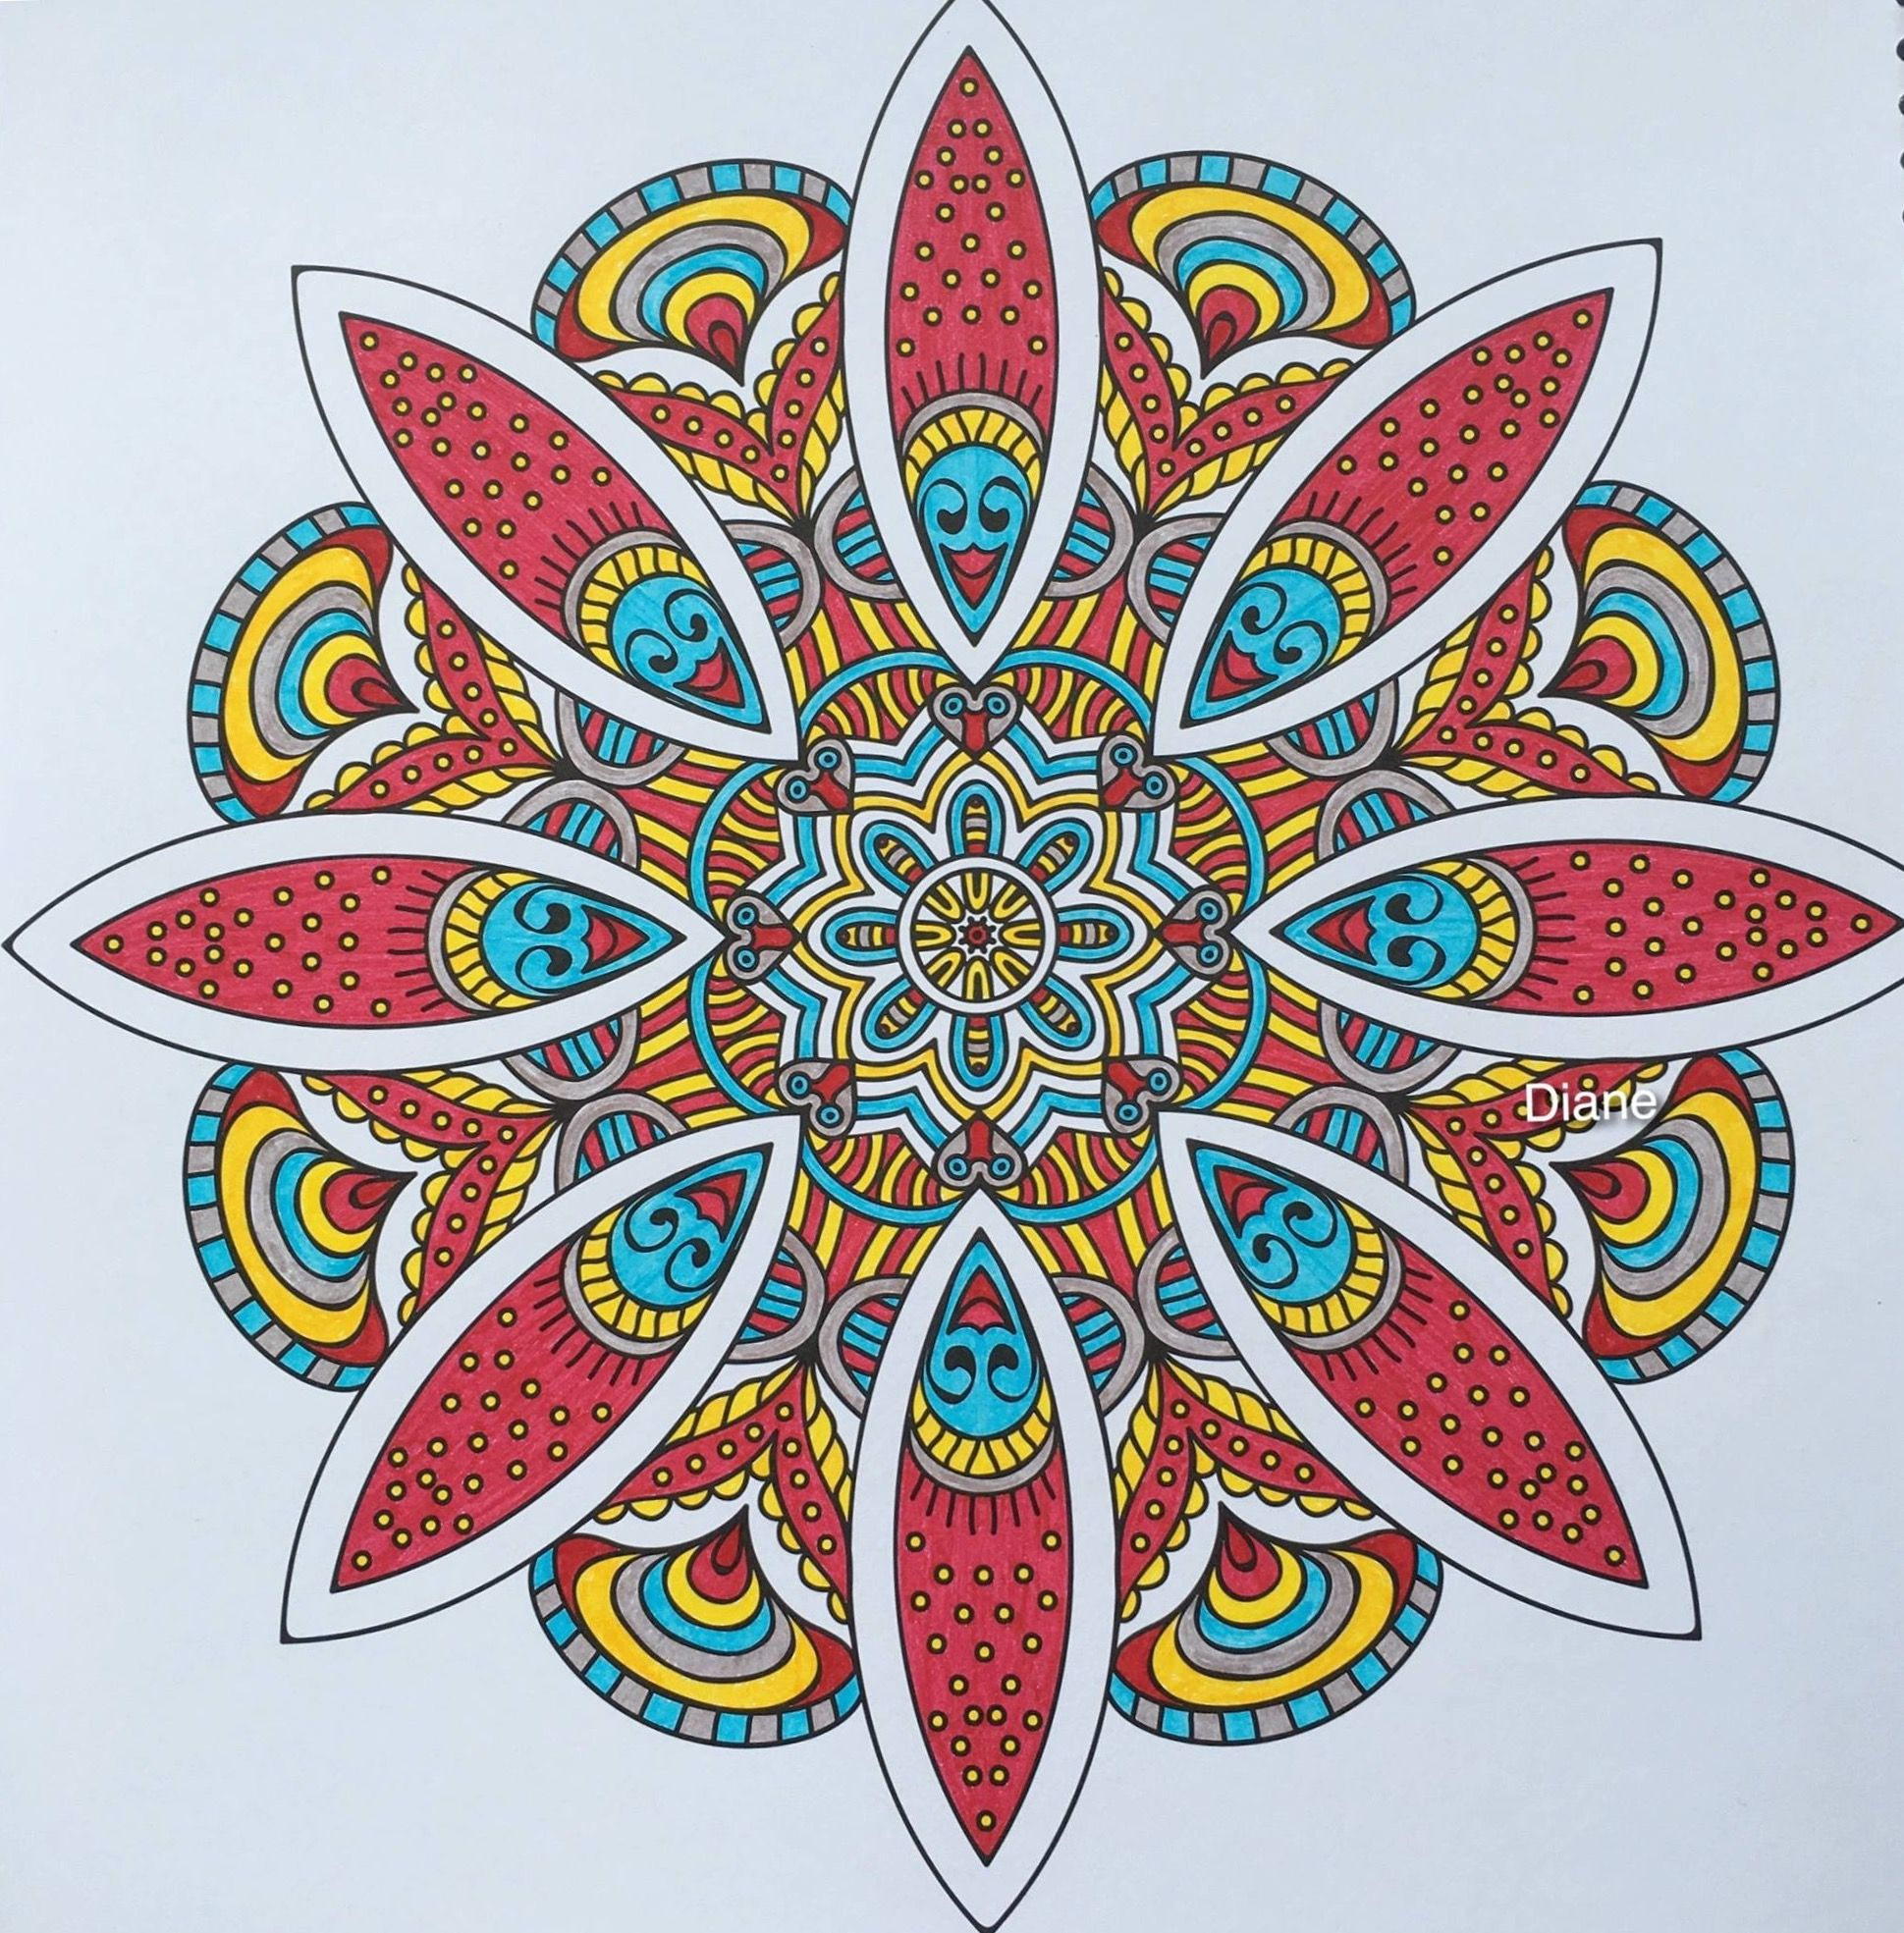 Pin by Coloring Bliss on Mandalas to inspire and heal | Pinterest ...